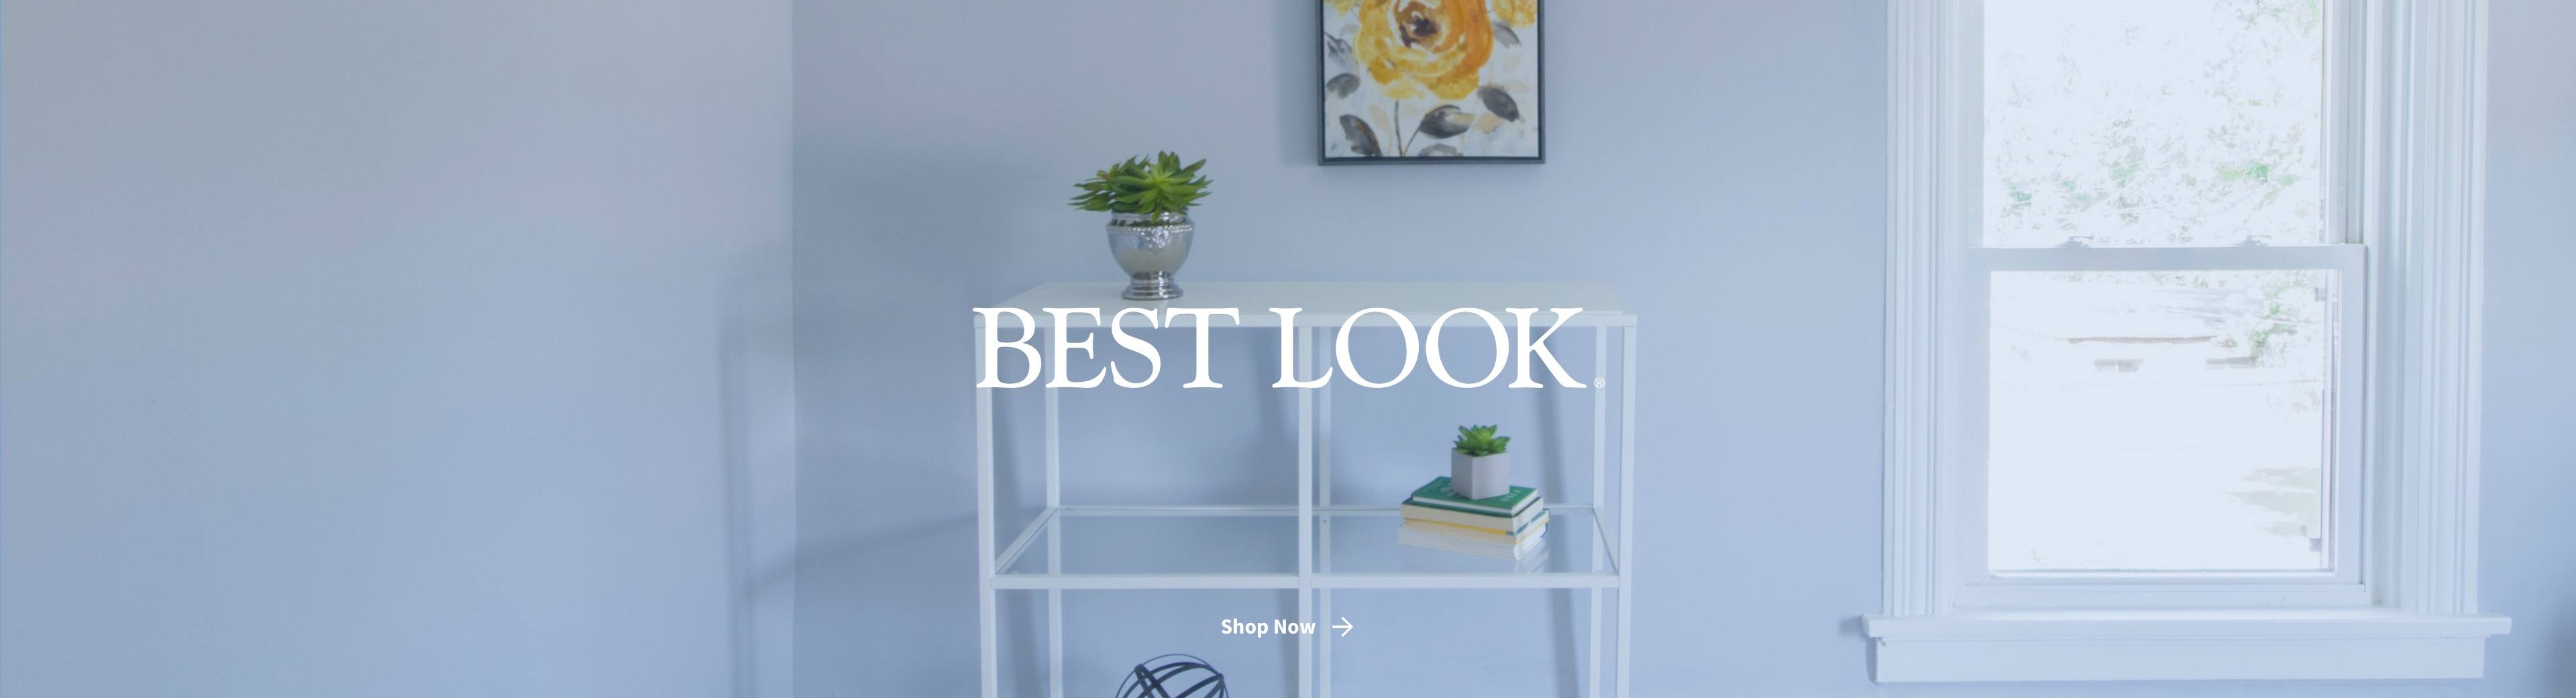 More about Best Look paint at Hunts